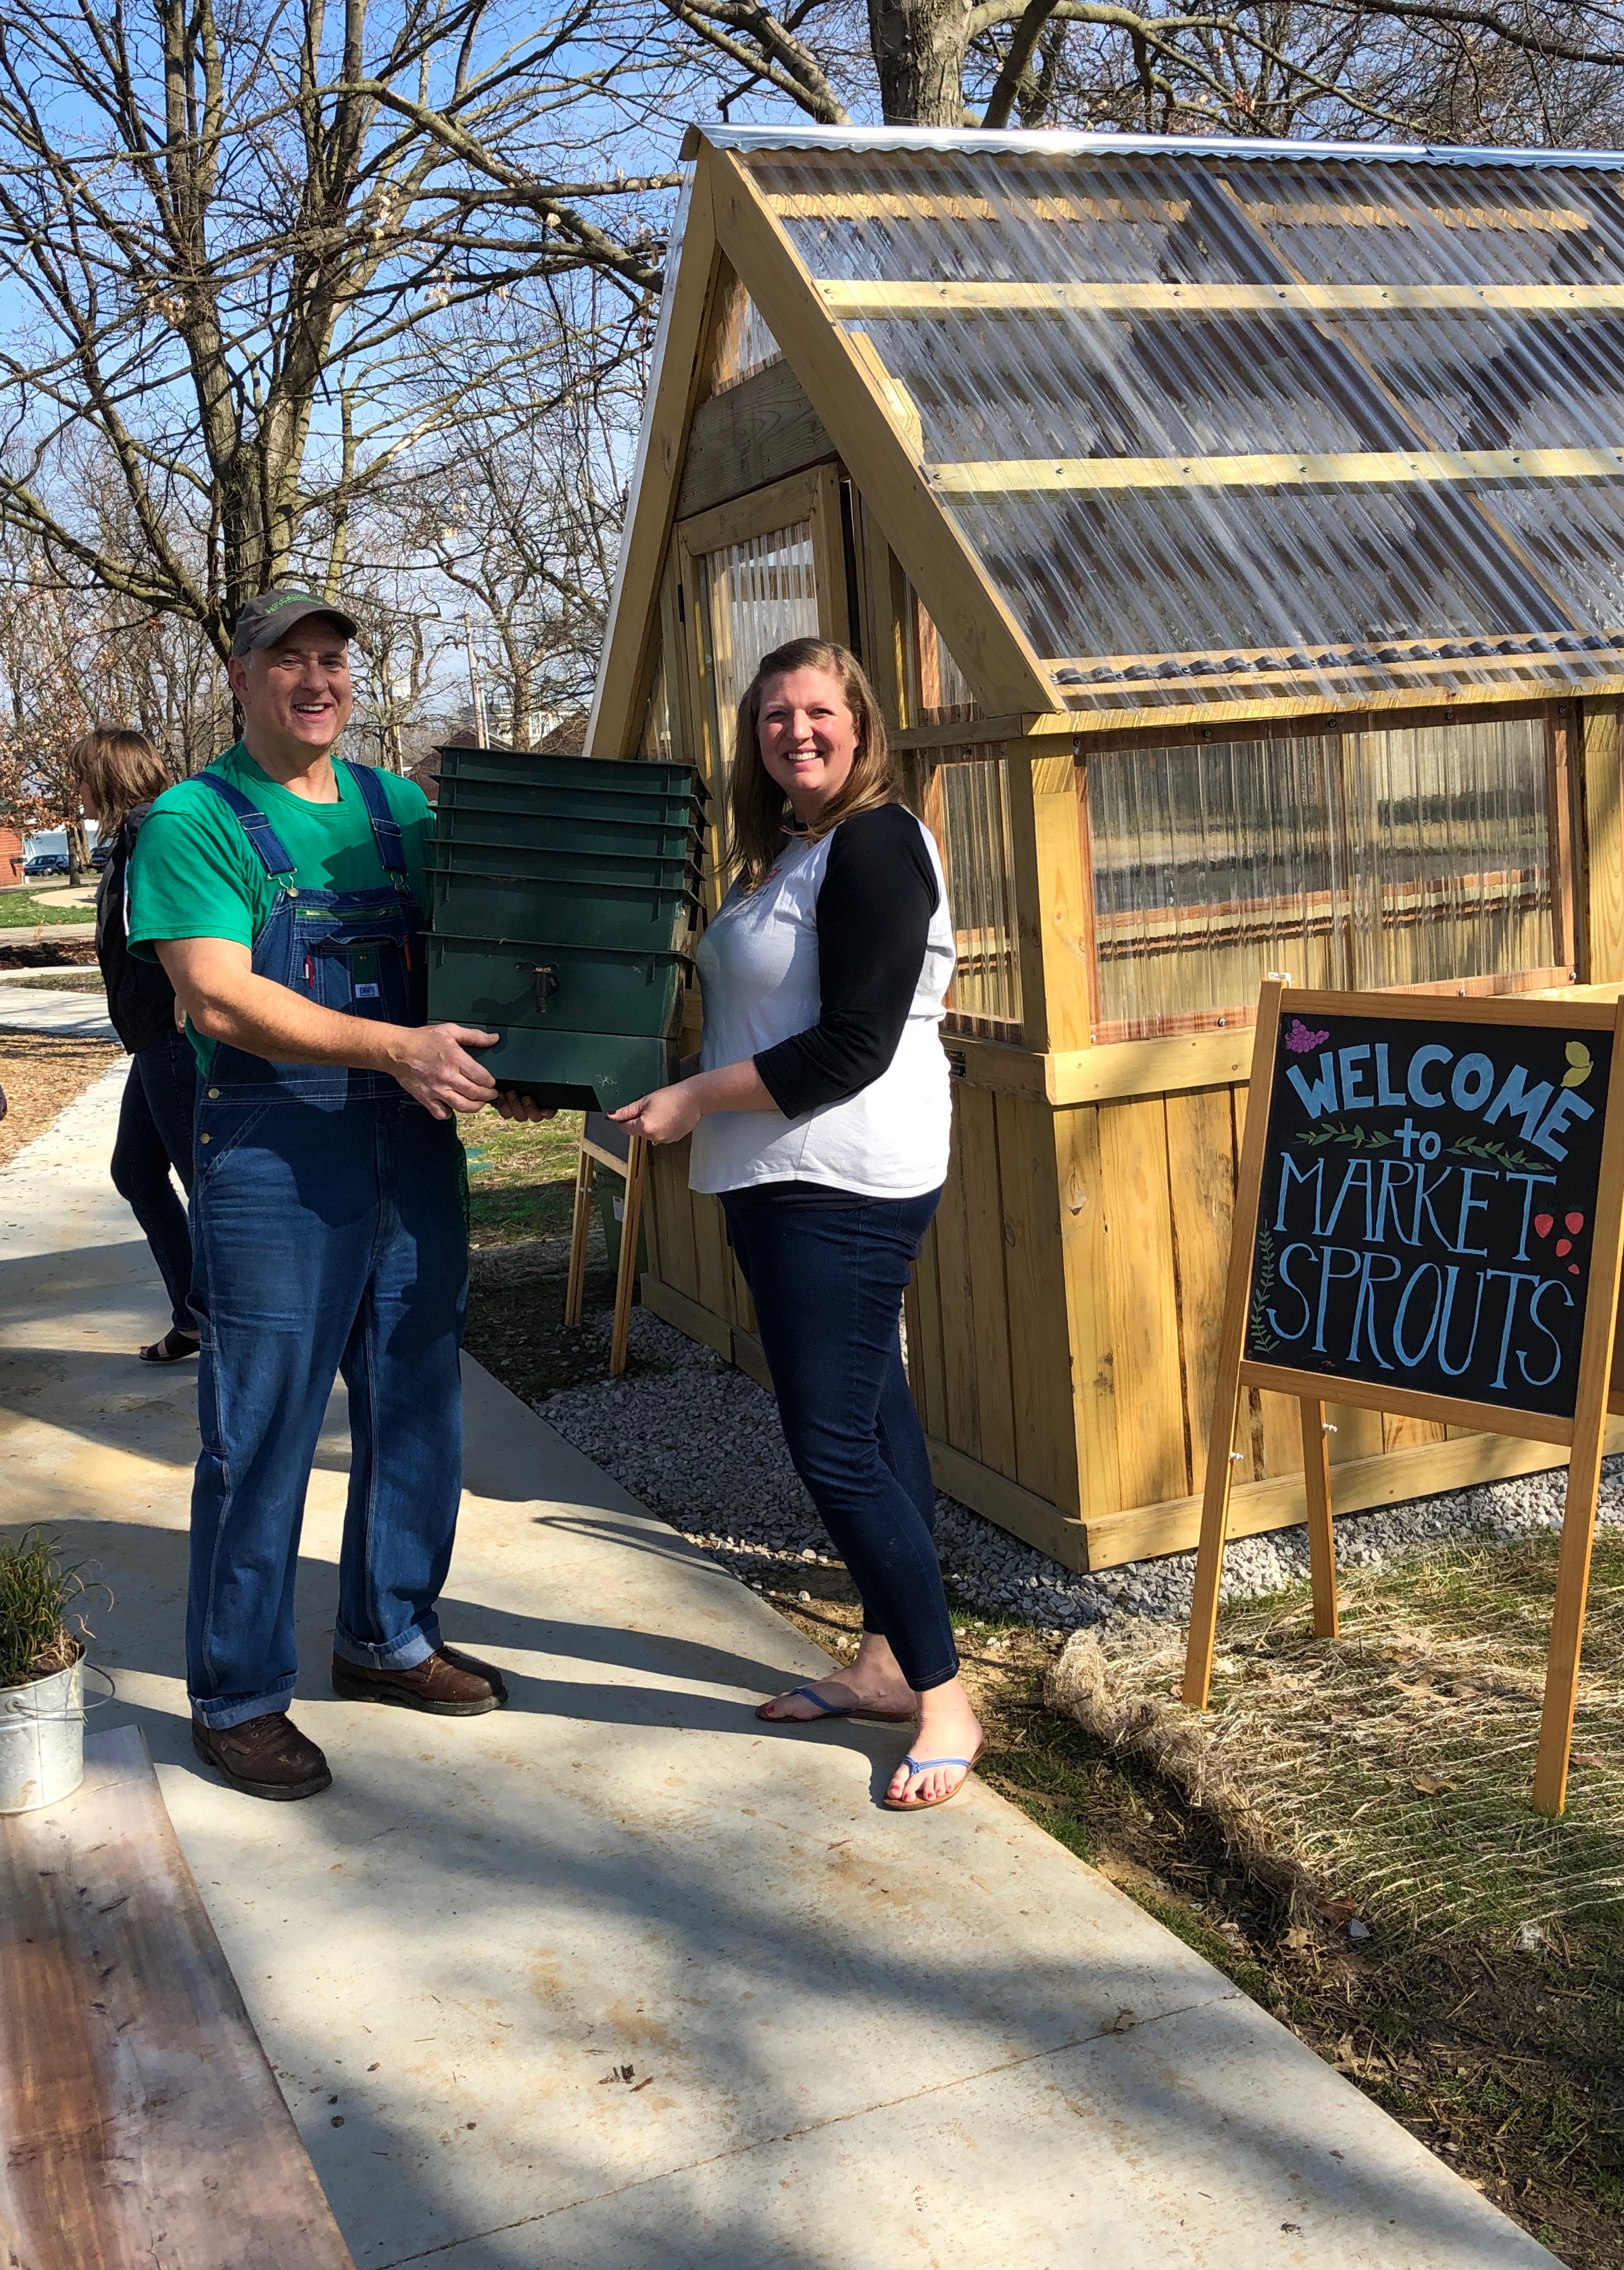 Market Sprouts Partners with The Edwardsville Children's Museum